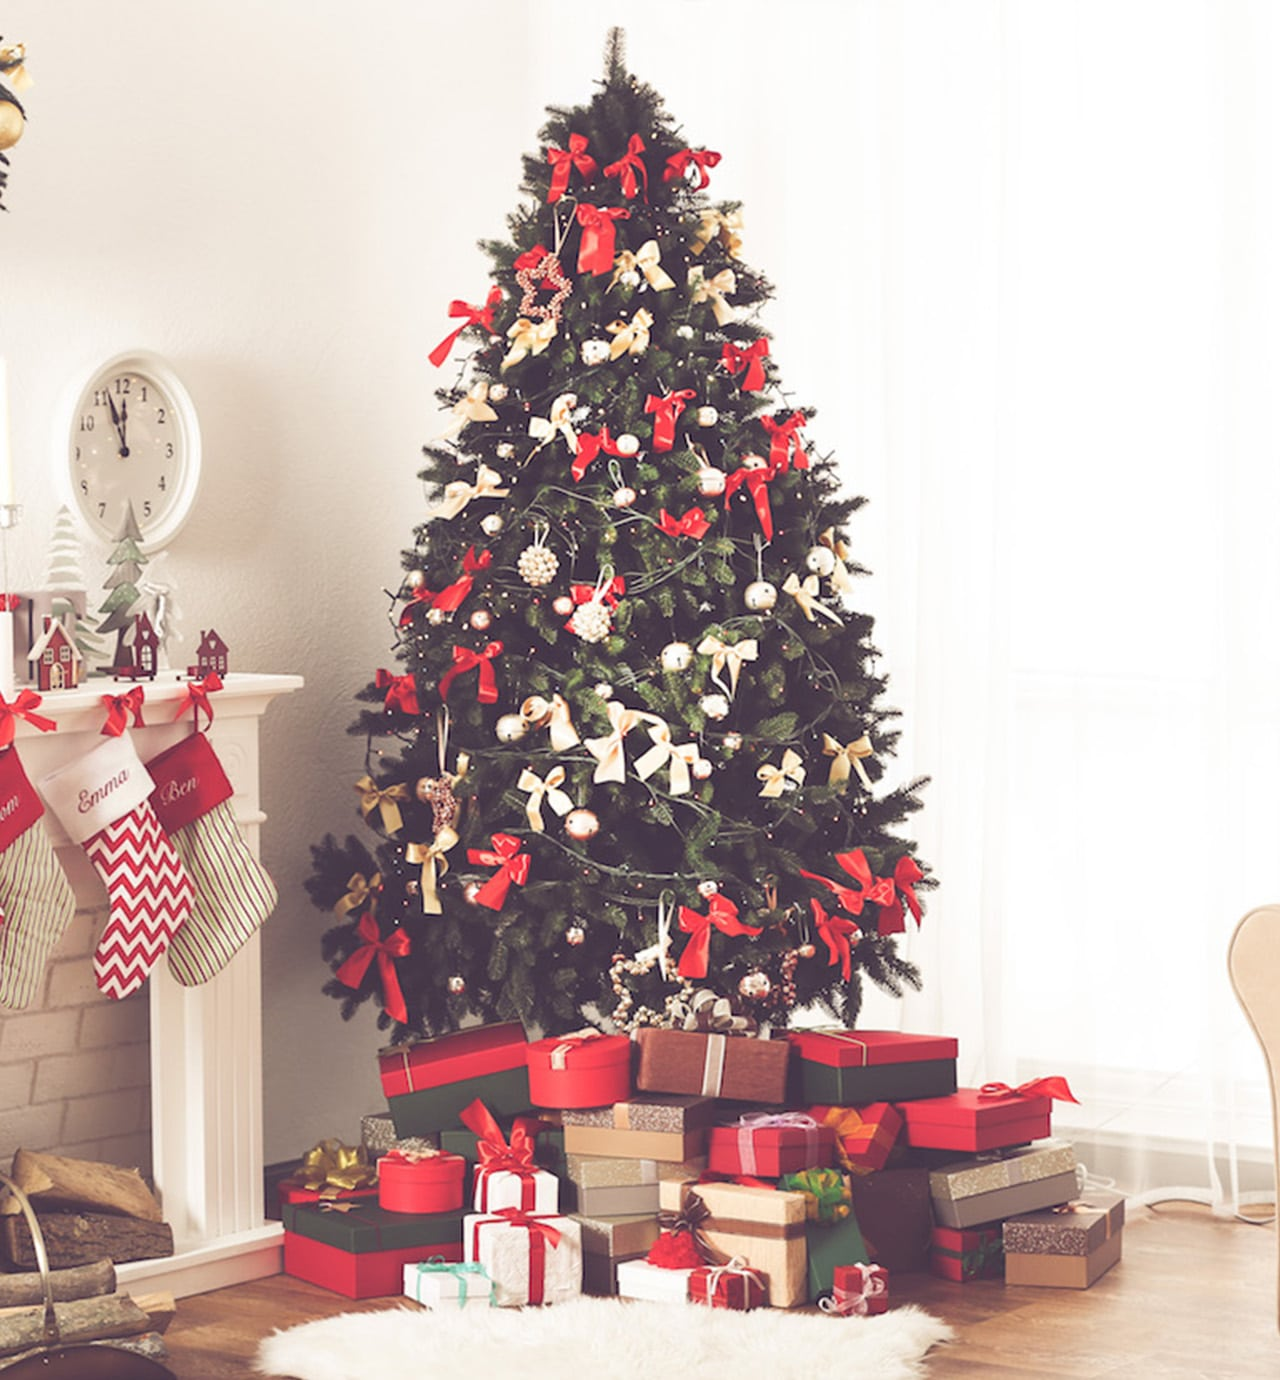 christmas tree | paducah | paducah insurance